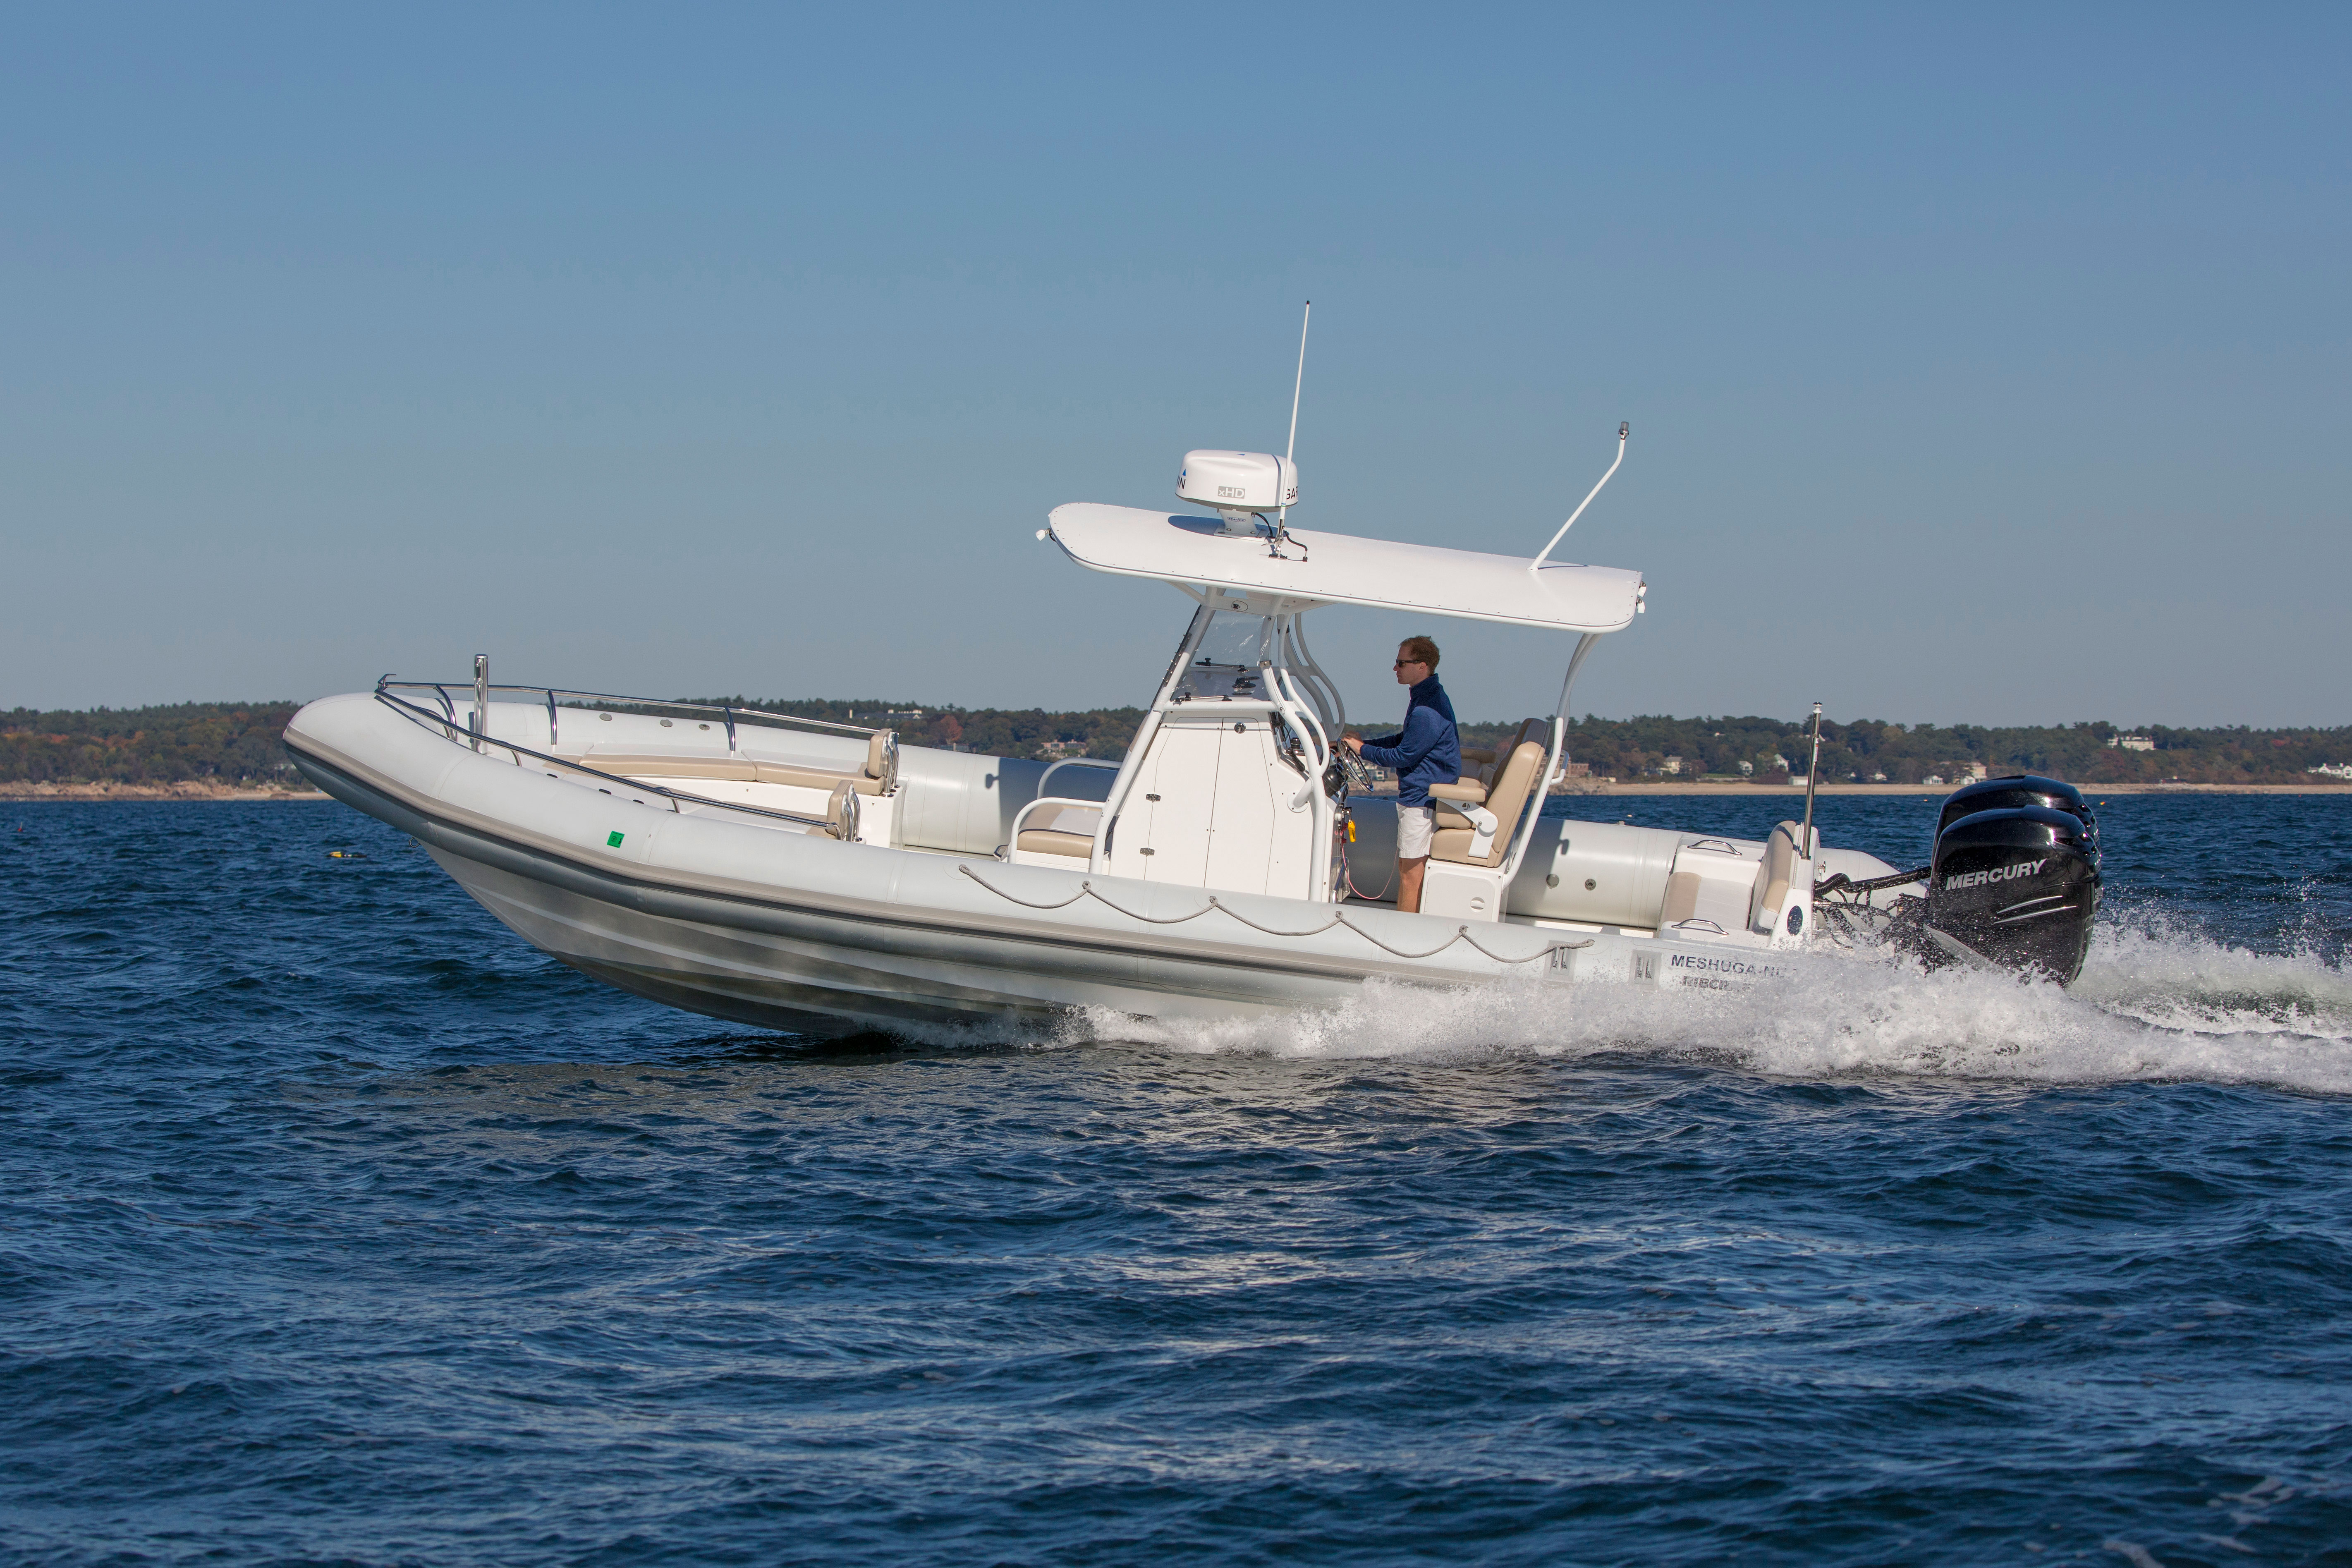 Lower weight, better fuel efficiency, ease of operation, stability and safety have led to a recent upswing in popularity of rigid inflatable boats (RIBS).